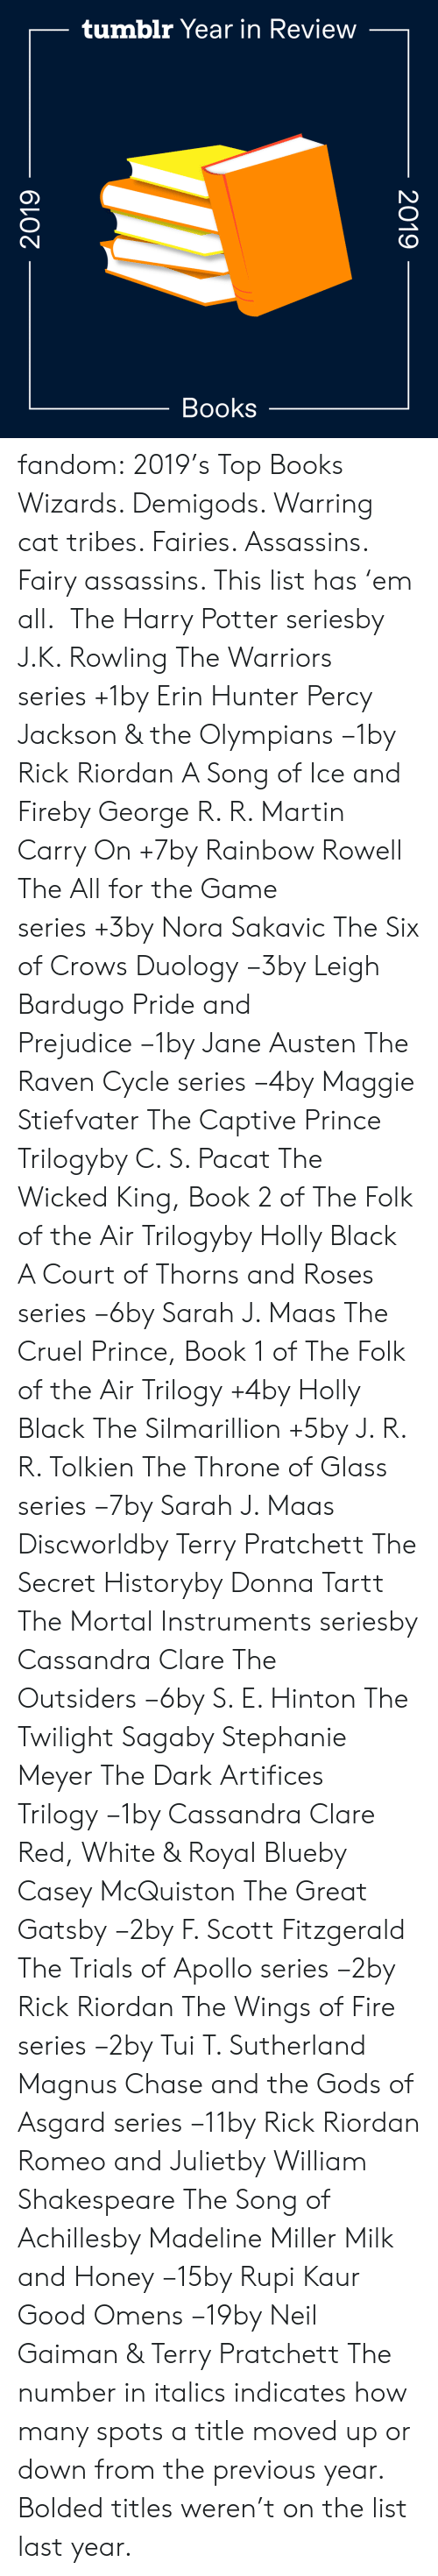 honey: tumblr Year in Review  Books  2019  2019 fandom:  2019's Top Books  Wizards. Demigods. Warring cat tribes. Fairies. Assassins. Fairy assassins. This list has 'em all.   The Harry Potter seriesby J.K. Rowling  The Warriors series +1by Erin Hunter  Percy Jackson & the Olympians −1by Rick Riordan  A Song of Ice and Fireby George R. R. Martin  Carry On +7by Rainbow Rowell  The All for the Game series +3by Nora Sakavic  The Six of Crows Duology −3by Leigh Bardugo  Pride and Prejudice −1by Jane Austen  The Raven Cycle series −4by Maggie Stiefvater  The Captive Prince Trilogyby C. S. Pacat  The Wicked King, Book 2 of The Folk of the Air Trilogyby Holly Black  A Court of Thorns and Roses series −6by Sarah J. Maas  The Cruel Prince, Book 1 of The Folk of the Air Trilogy +4by Holly Black  The Silmarillion +5by J. R. R. Tolkien  The Throne of Glass series −7by Sarah J. Maas  Discworldby Terry Pratchett  The Secret Historyby Donna Tartt  The Mortal Instruments seriesby Cassandra Clare  The Outsiders −6by S. E. Hinton  The Twilight Sagaby Stephanie Meyer  The Dark Artifices Trilogy −1by Cassandra Clare  Red, White & Royal Blueby Casey McQuiston  The Great Gatsby −2by F. Scott Fitzgerald  The Trials of Apollo series −2by Rick Riordan  The Wings of Fire series −2by Tui T. Sutherland  Magnus Chase and the Gods of Asgard series −11by Rick Riordan  Romeo and Julietby William Shakespeare  The Song of Achillesby Madeline Miller  Milk and Honey −15by Rupi Kaur  Good Omens −19by Neil Gaiman & Terry Pratchett The number in italics indicates how many spots a title moved up or down from the previous year. Bolded titles weren't on the list last year.